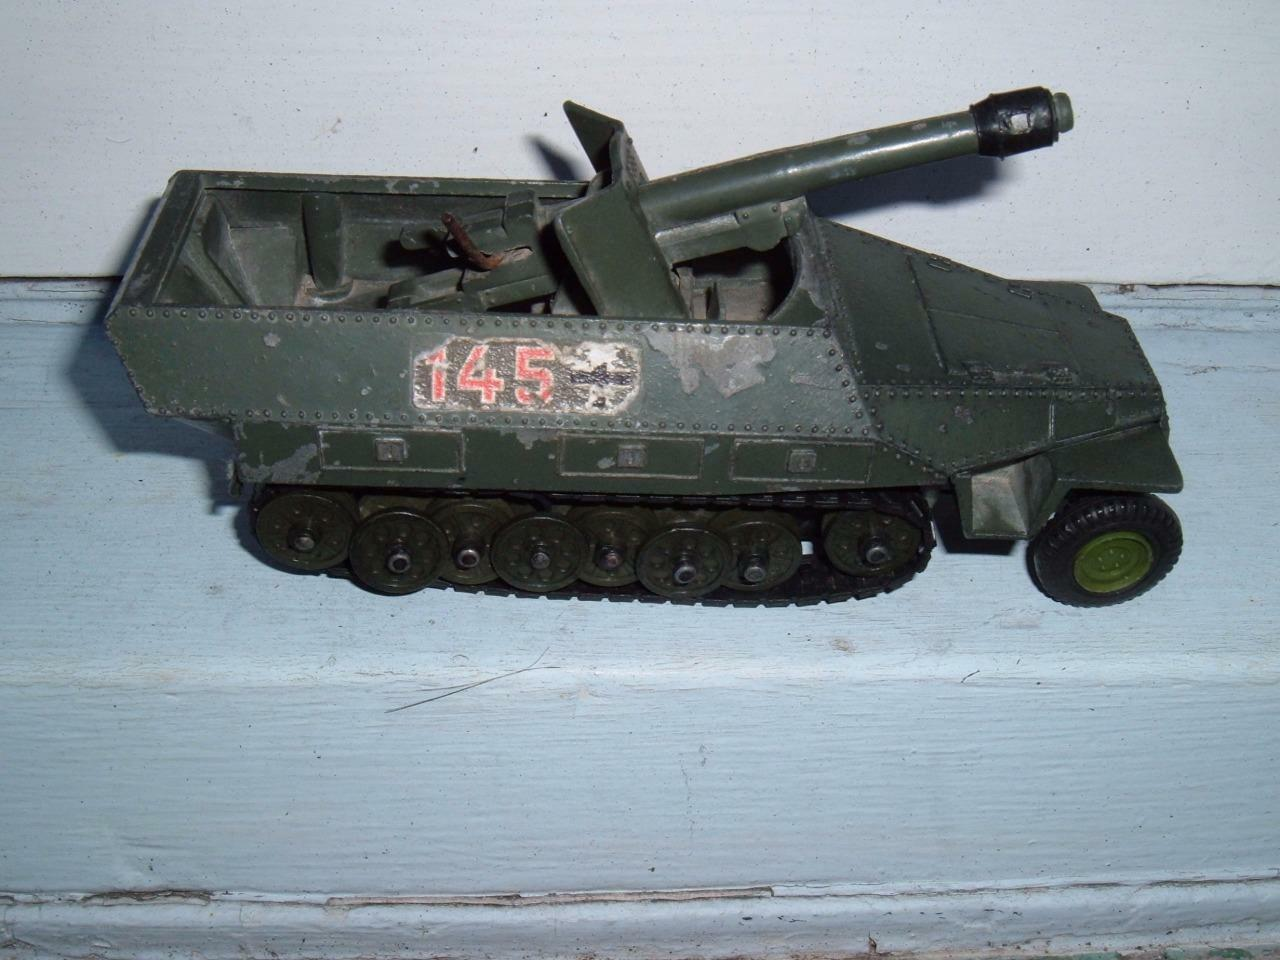 DINKY TOYS HANOMAG 7.5 CM TANK DESTROYER ORIGINAL VINTAGE STUDY THE PHOTOS